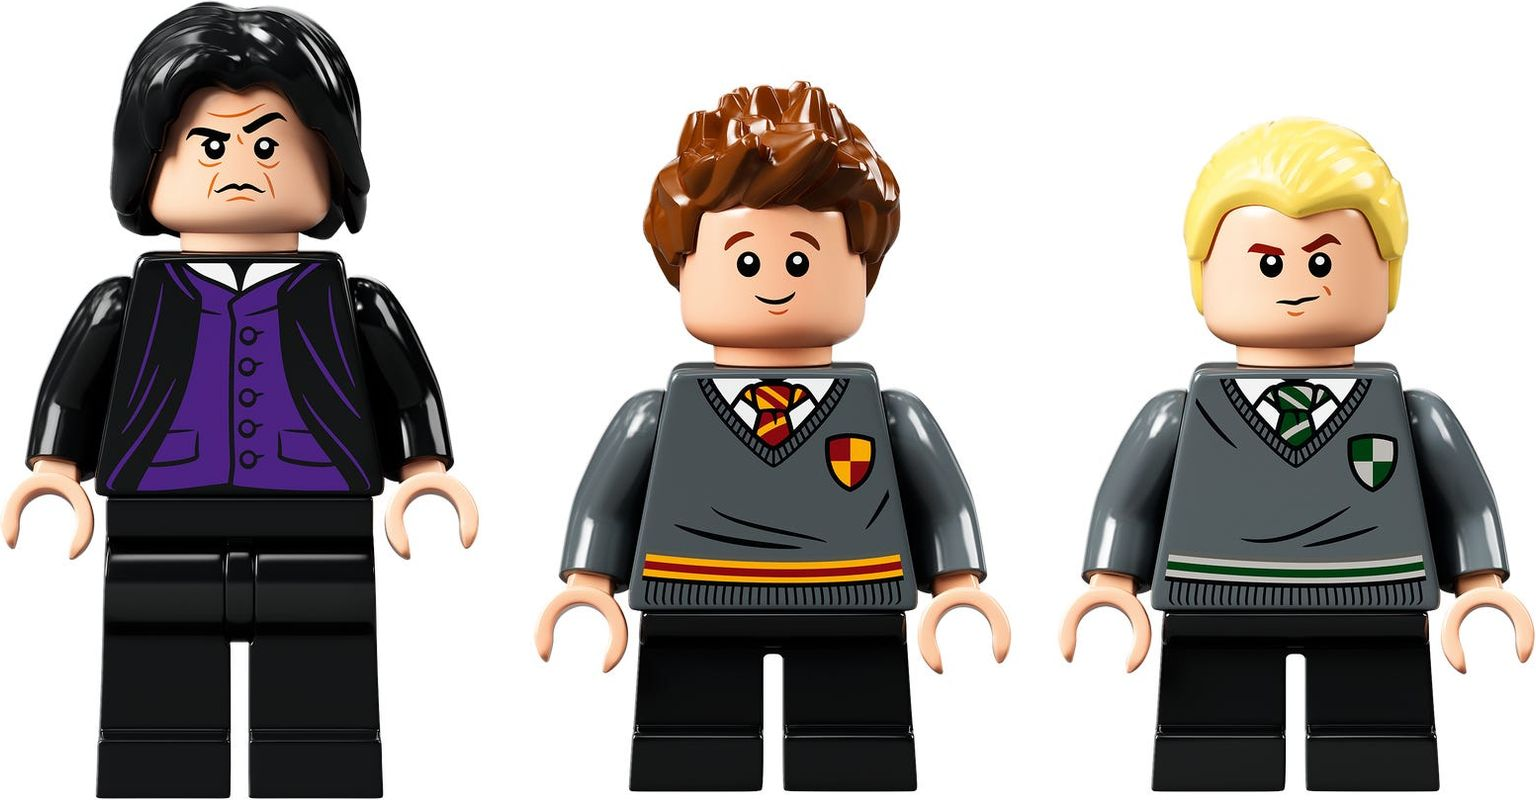 Hogwarts™ Moment: Potions Class minifigures